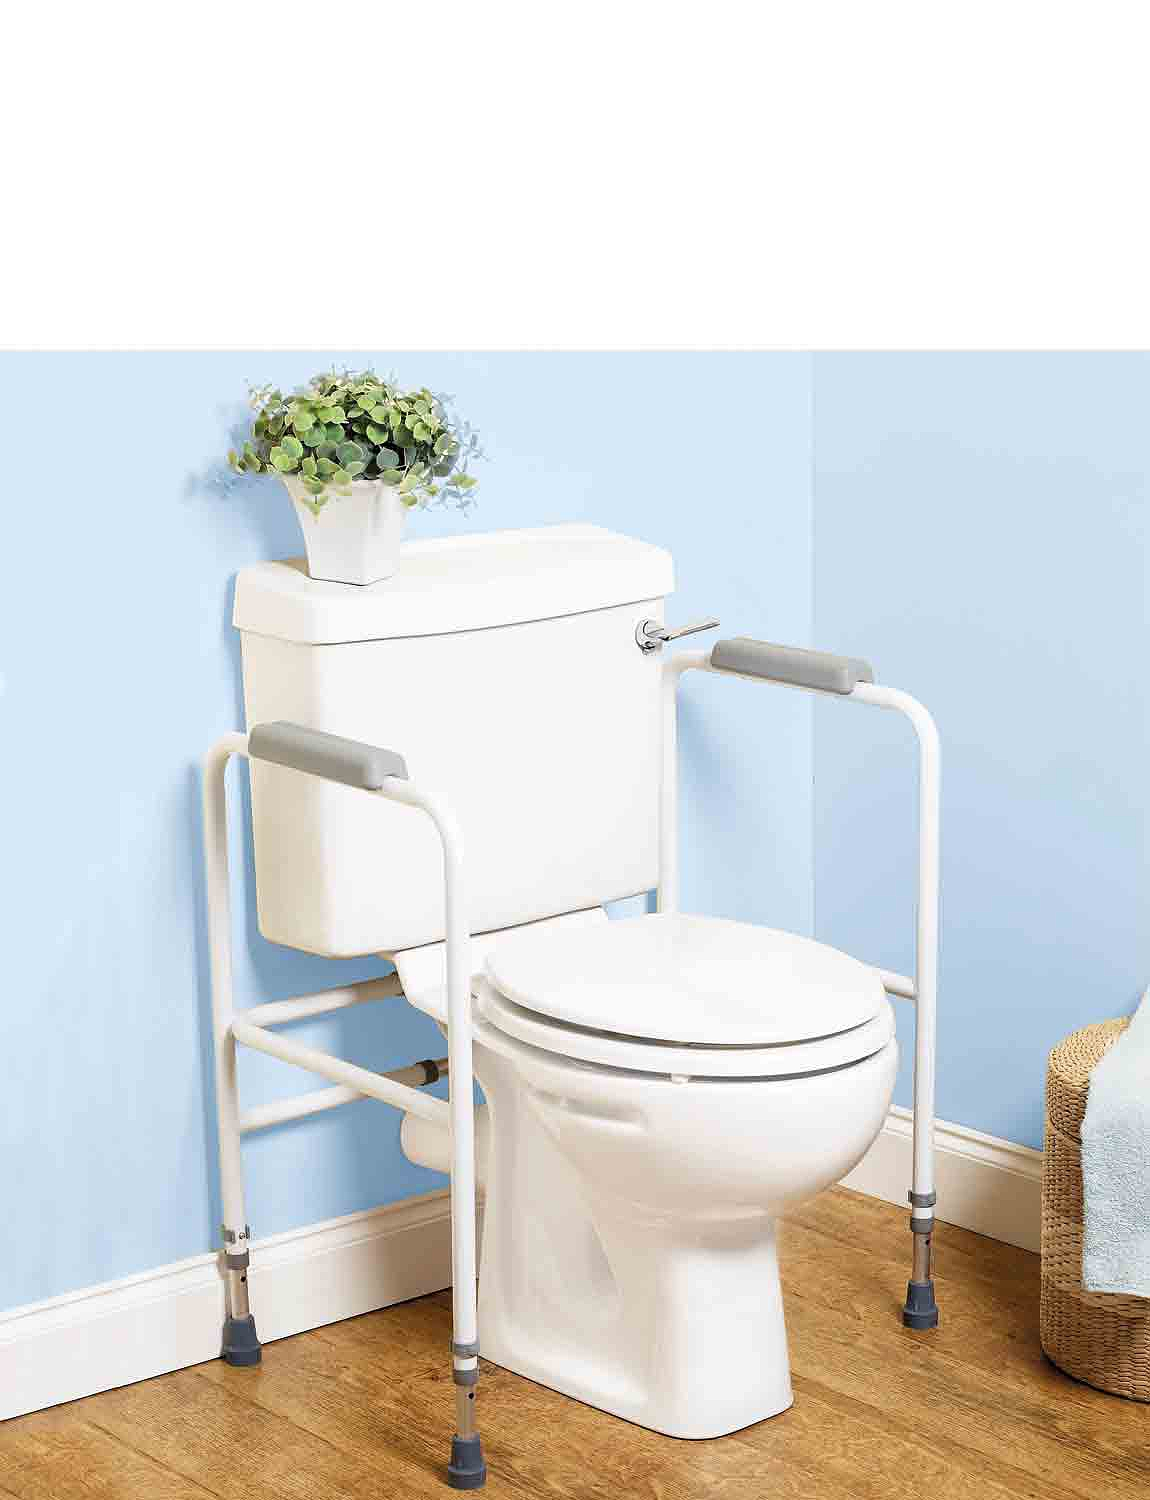 Toilet Support - White